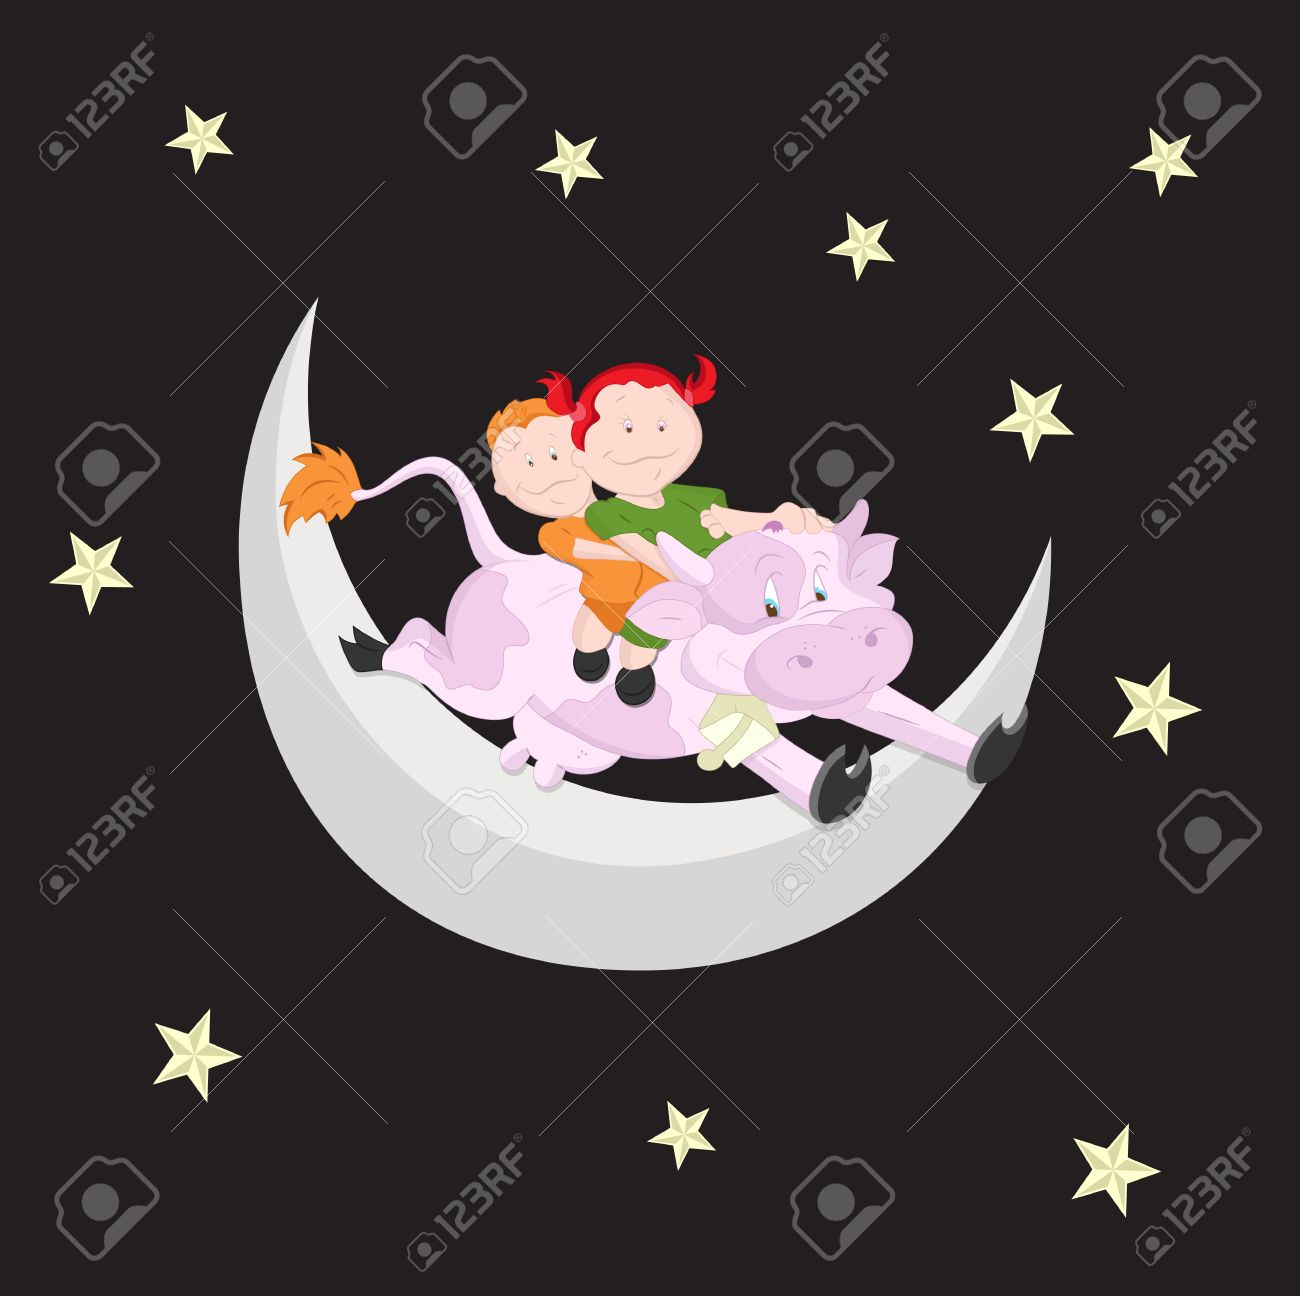 Kids on the Moon Stock Vector - 13052215